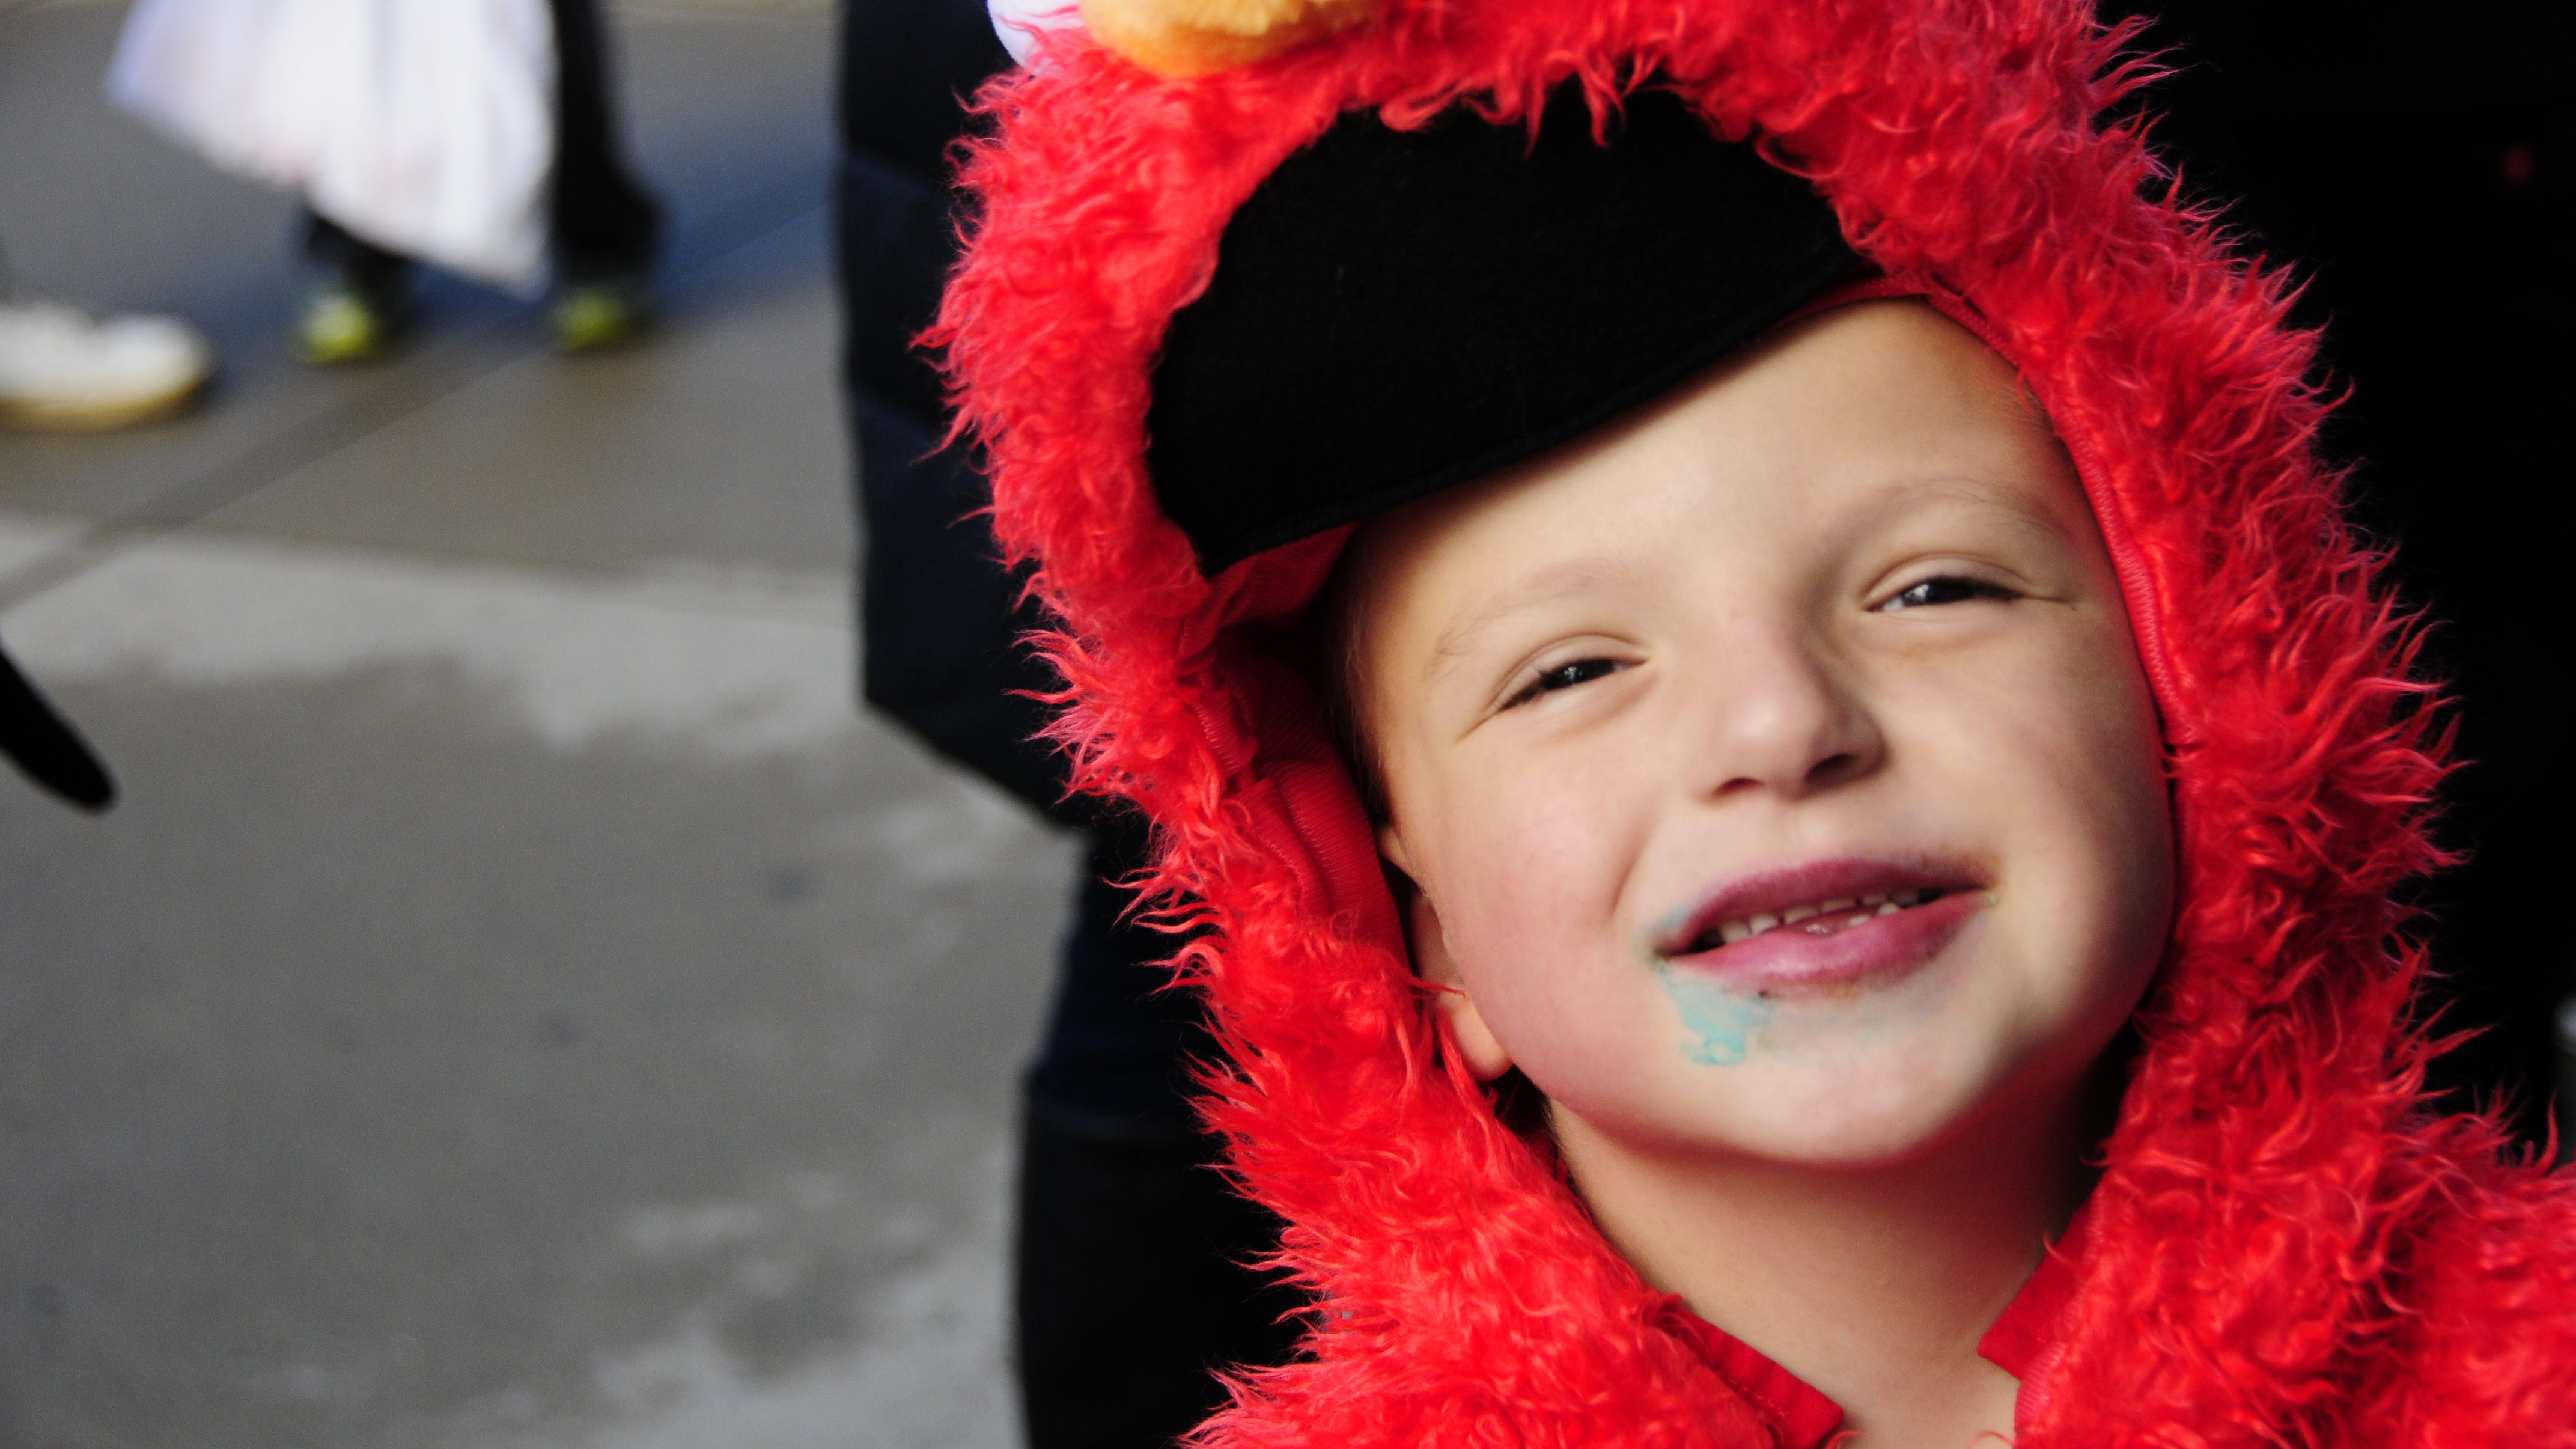 Charles Jones, 5, channels Elmo during Truck-or-Treat on Saturday, Oct. 20, 2018 in Port Huron.